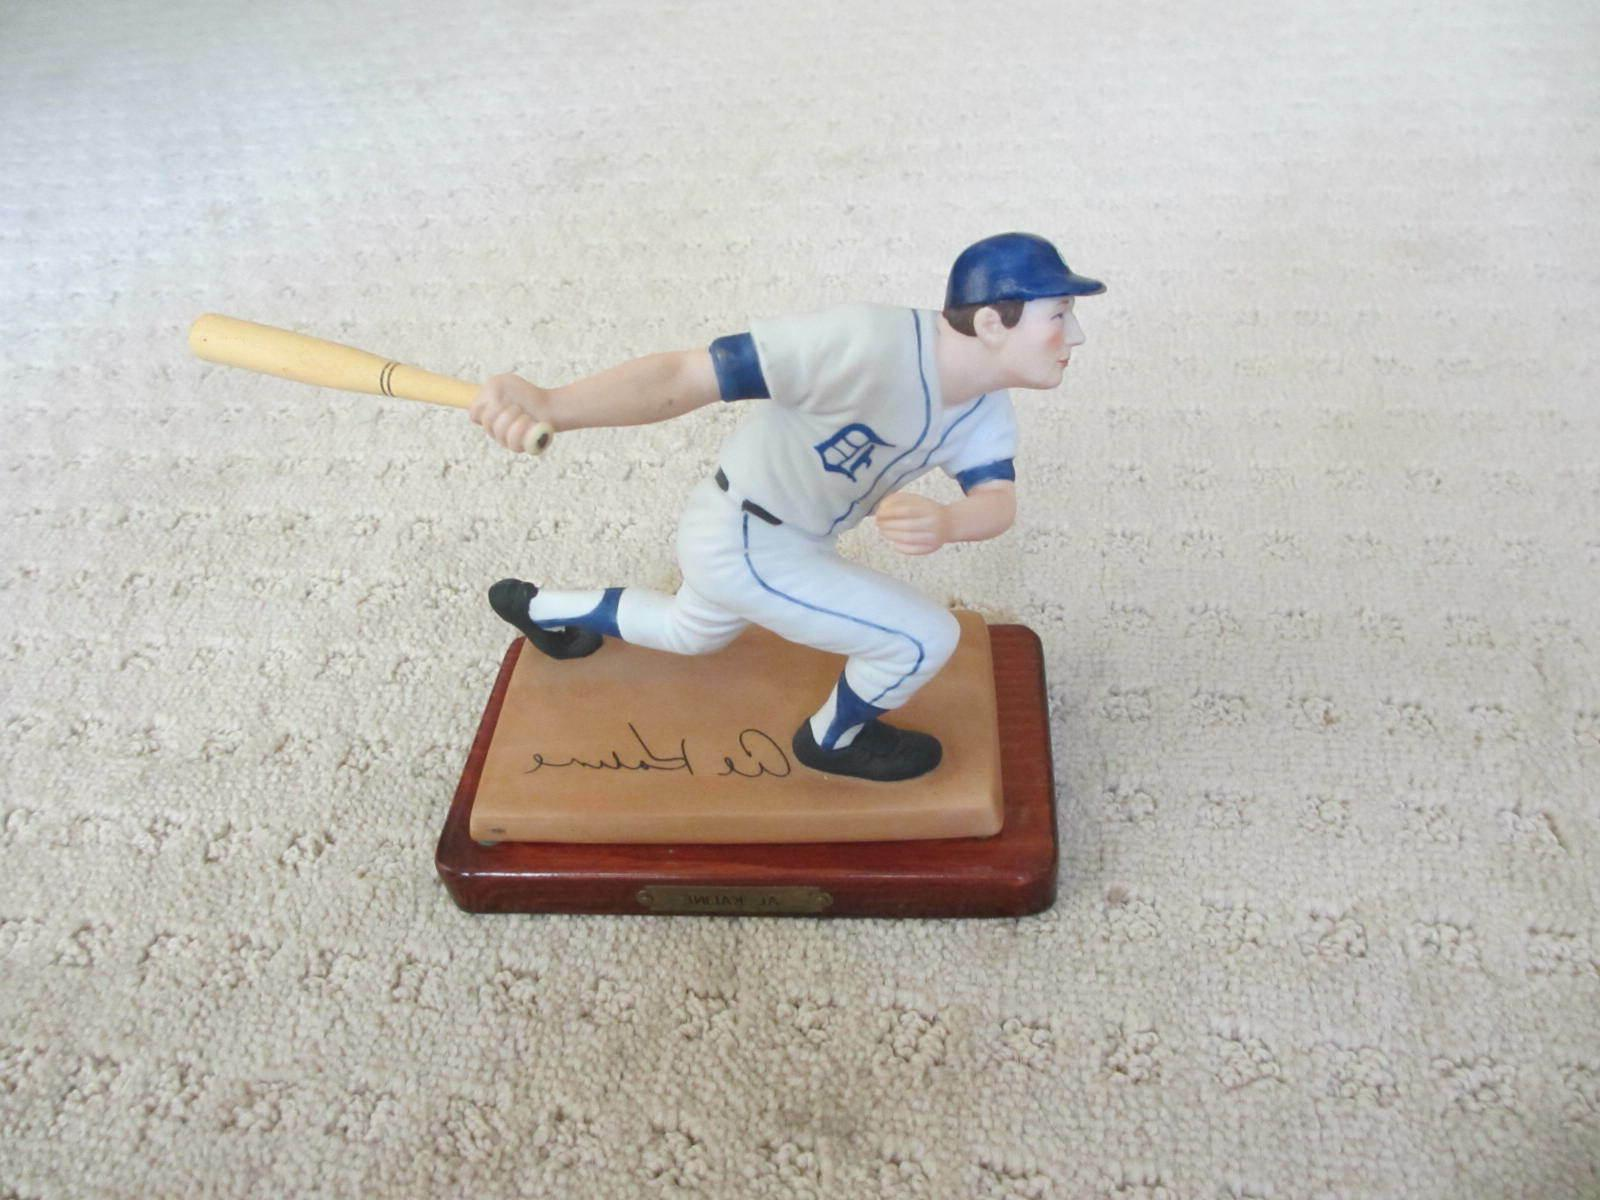 al kaline sports impressions limited edition figurine